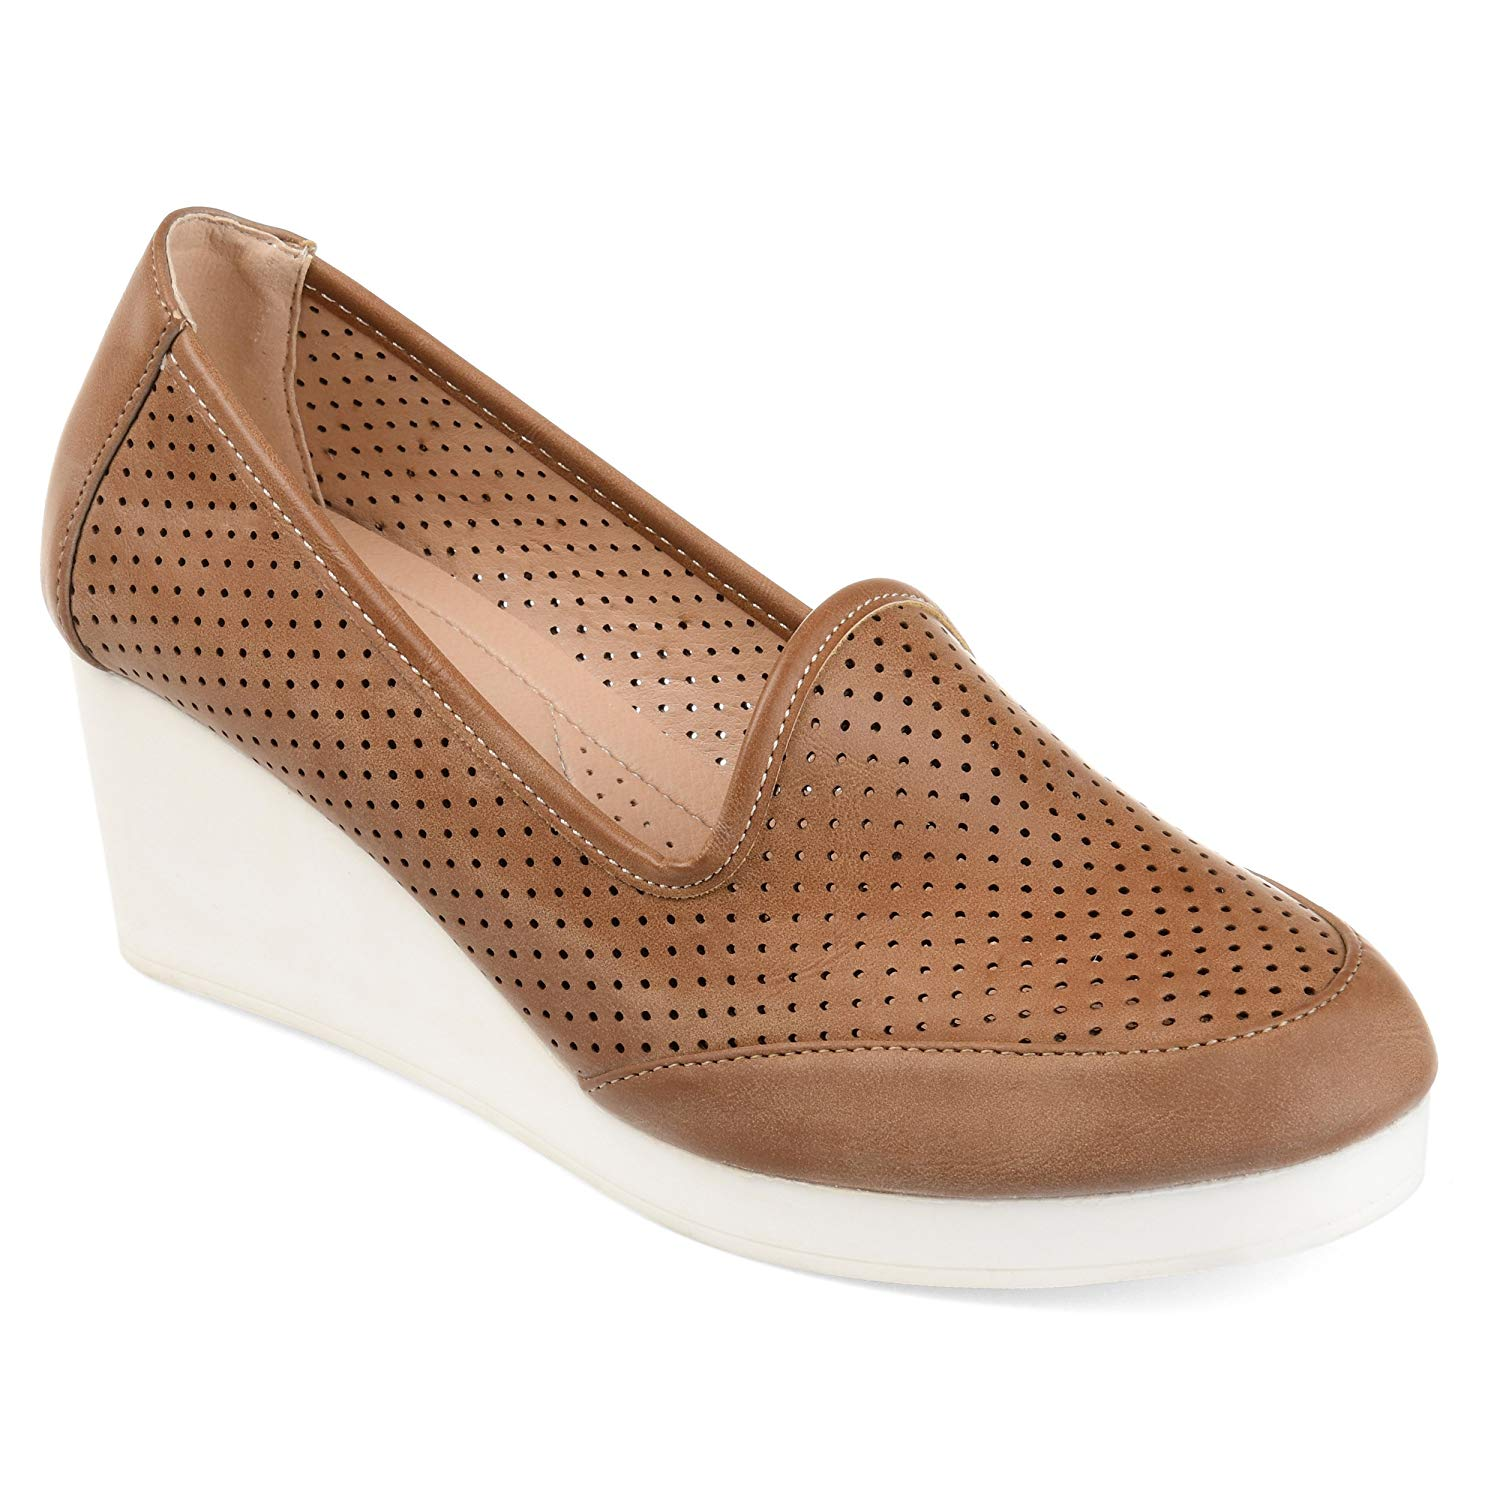 aebf9a49c2e Get Quotations · Journee Collection Womens Comfort Sole Lightweight  Laser-Cut Wedges